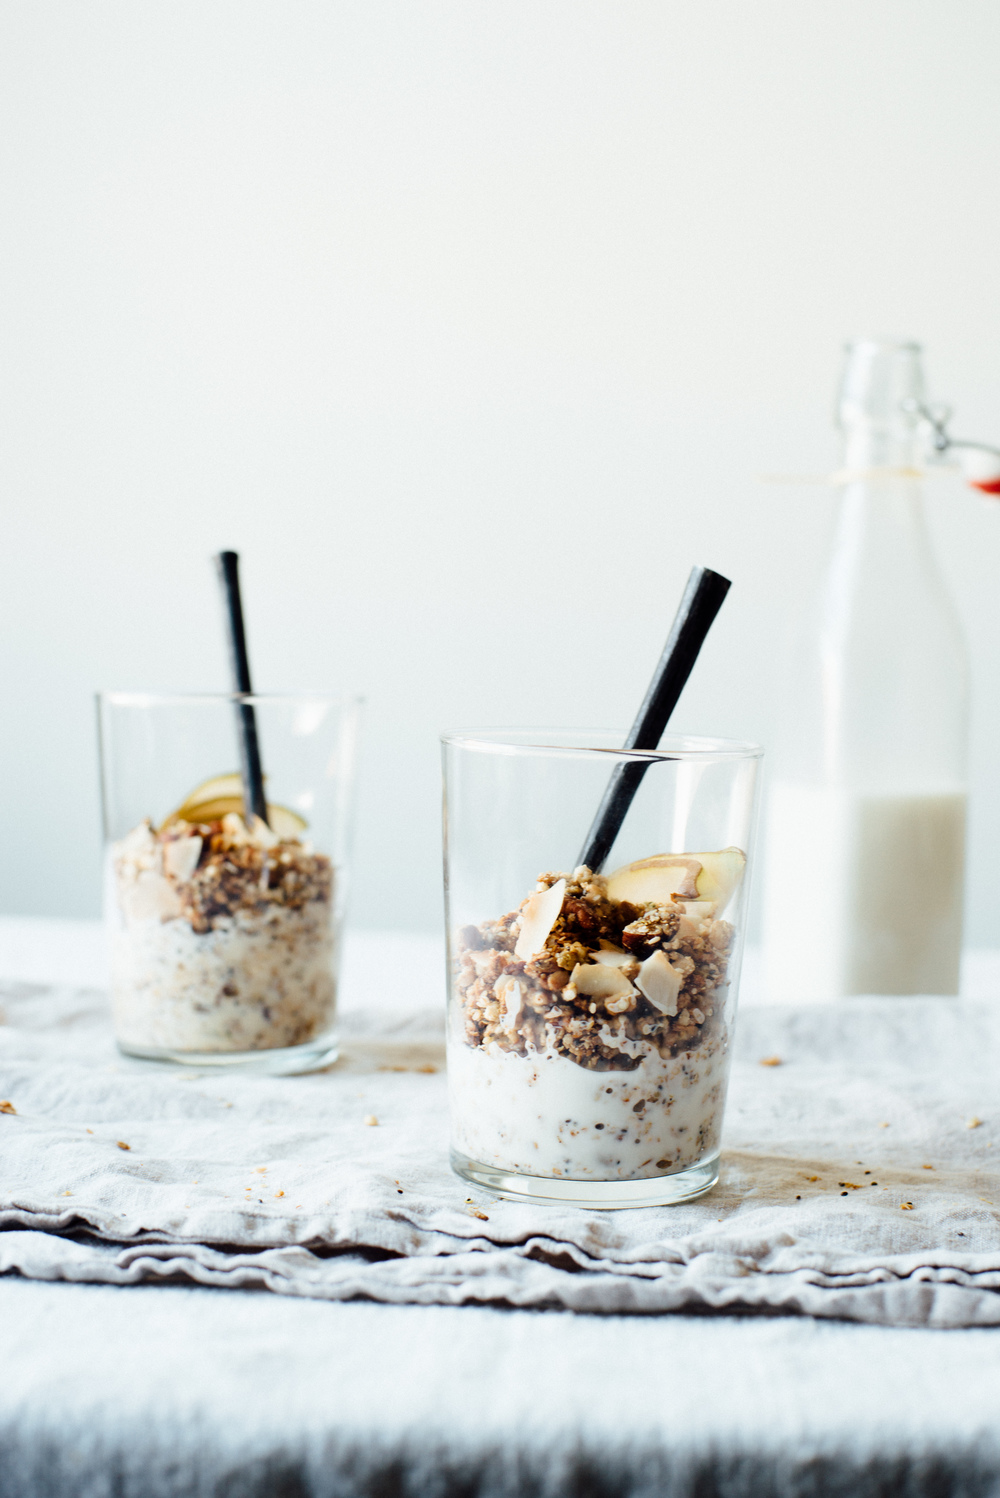 superfood granola + almond-macadamia milk